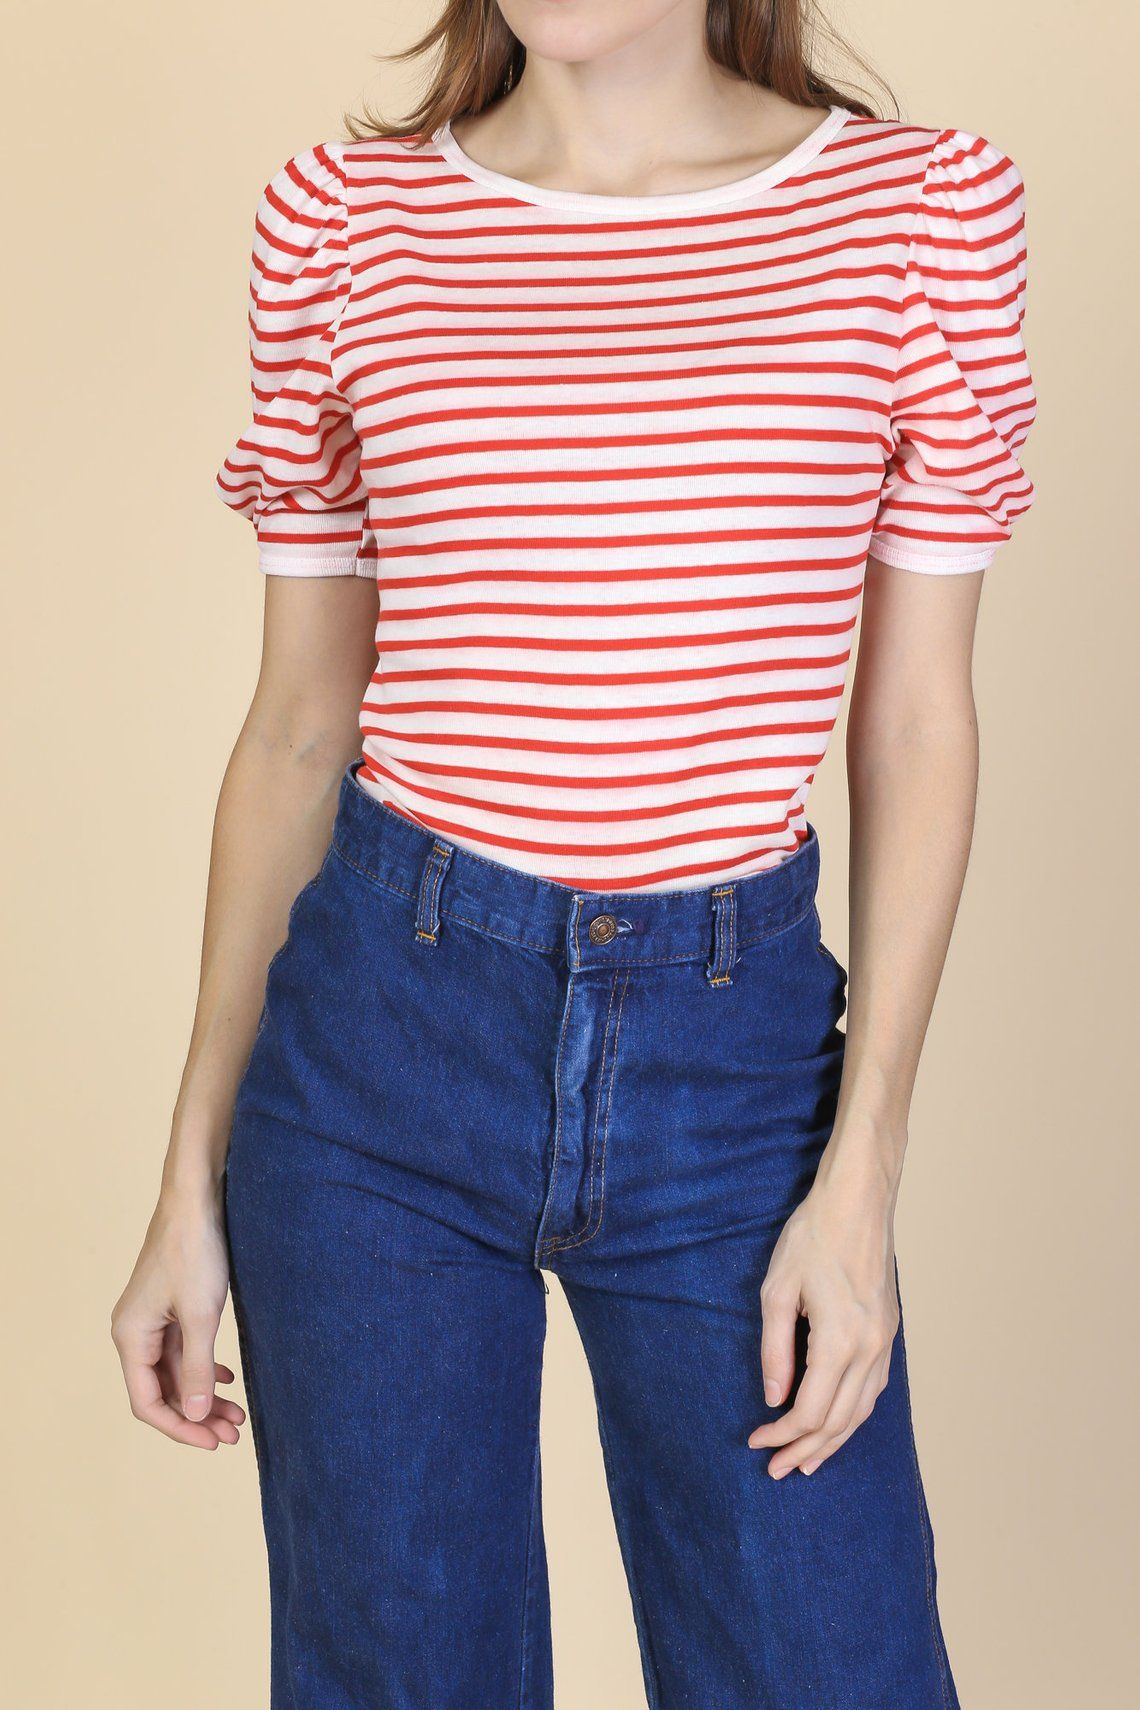 f10abb5892 70s Nautical Striped Top Small Vintage Red   White Puff